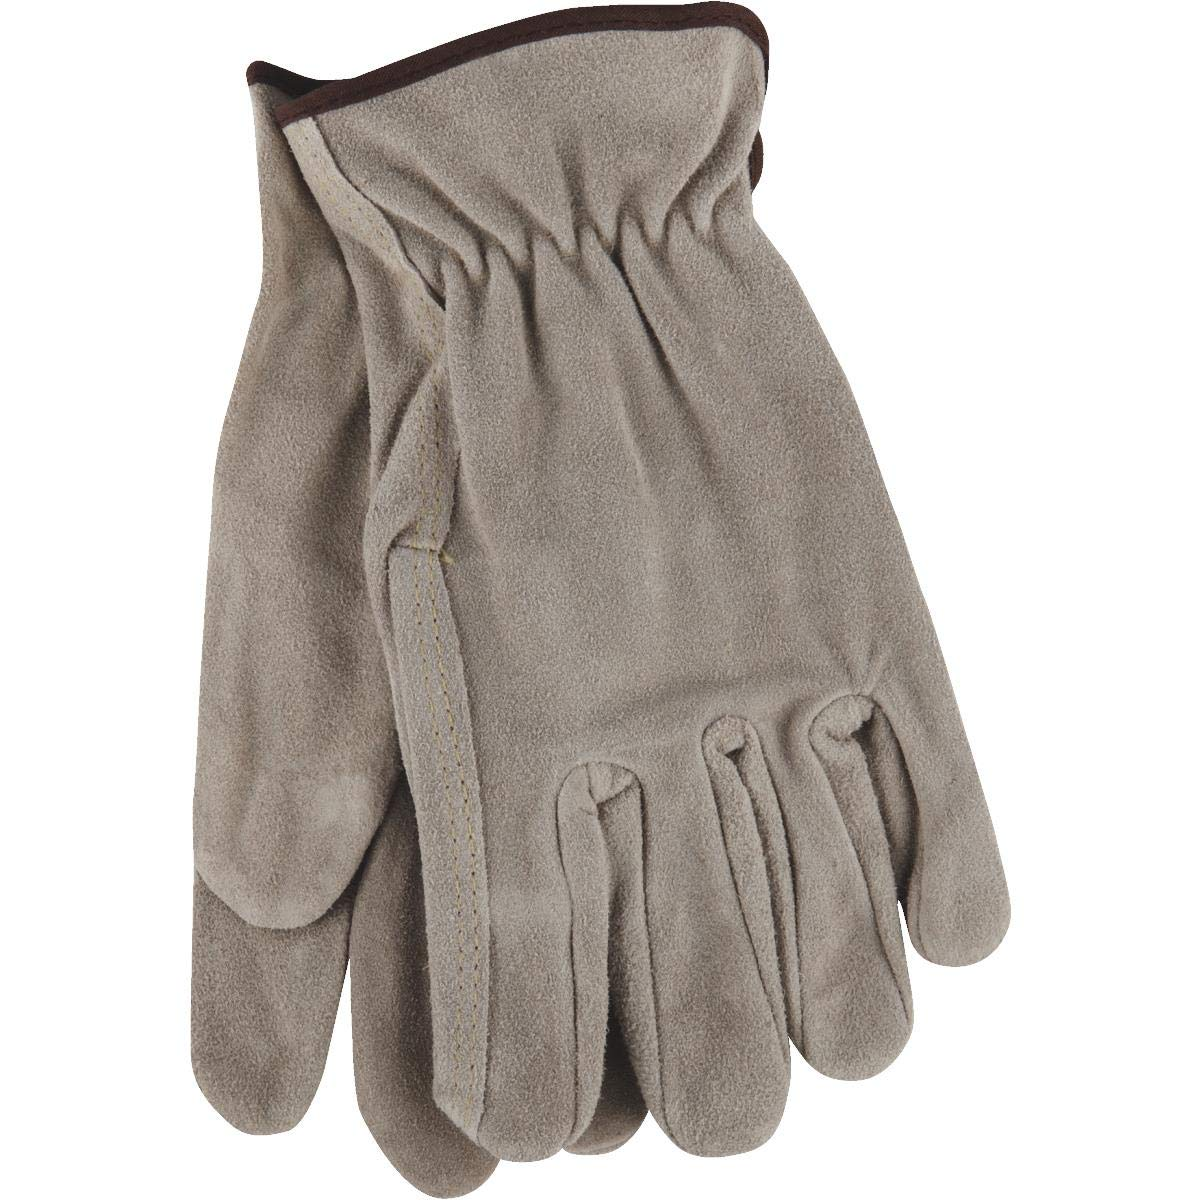 DO IT BEST GS 725594 Suede Leather Glove Large by DO IT BEST GS